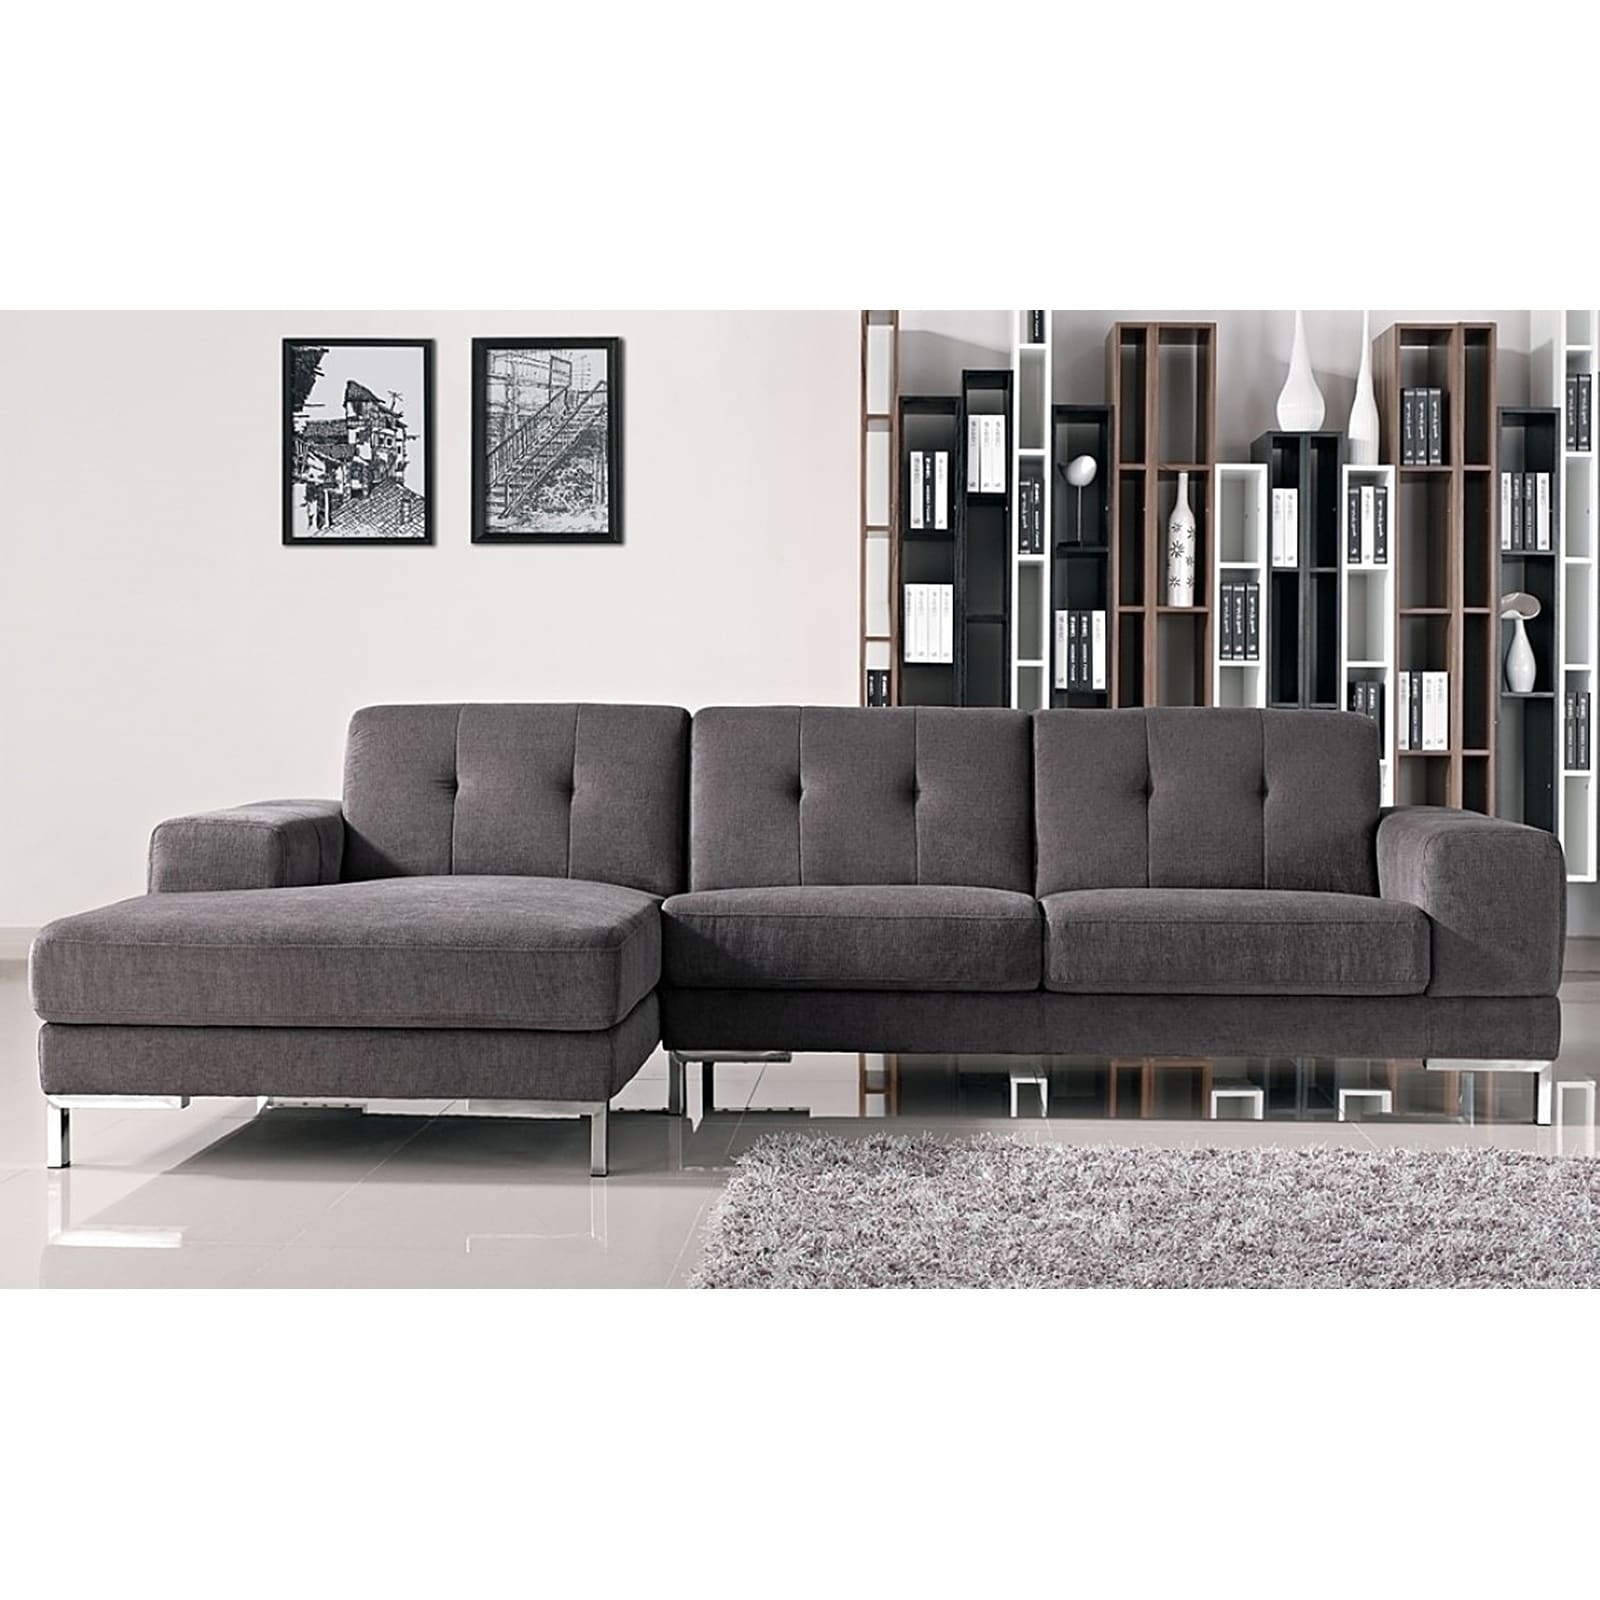 Halsted Clic Grey Fabric Tufted Sofa